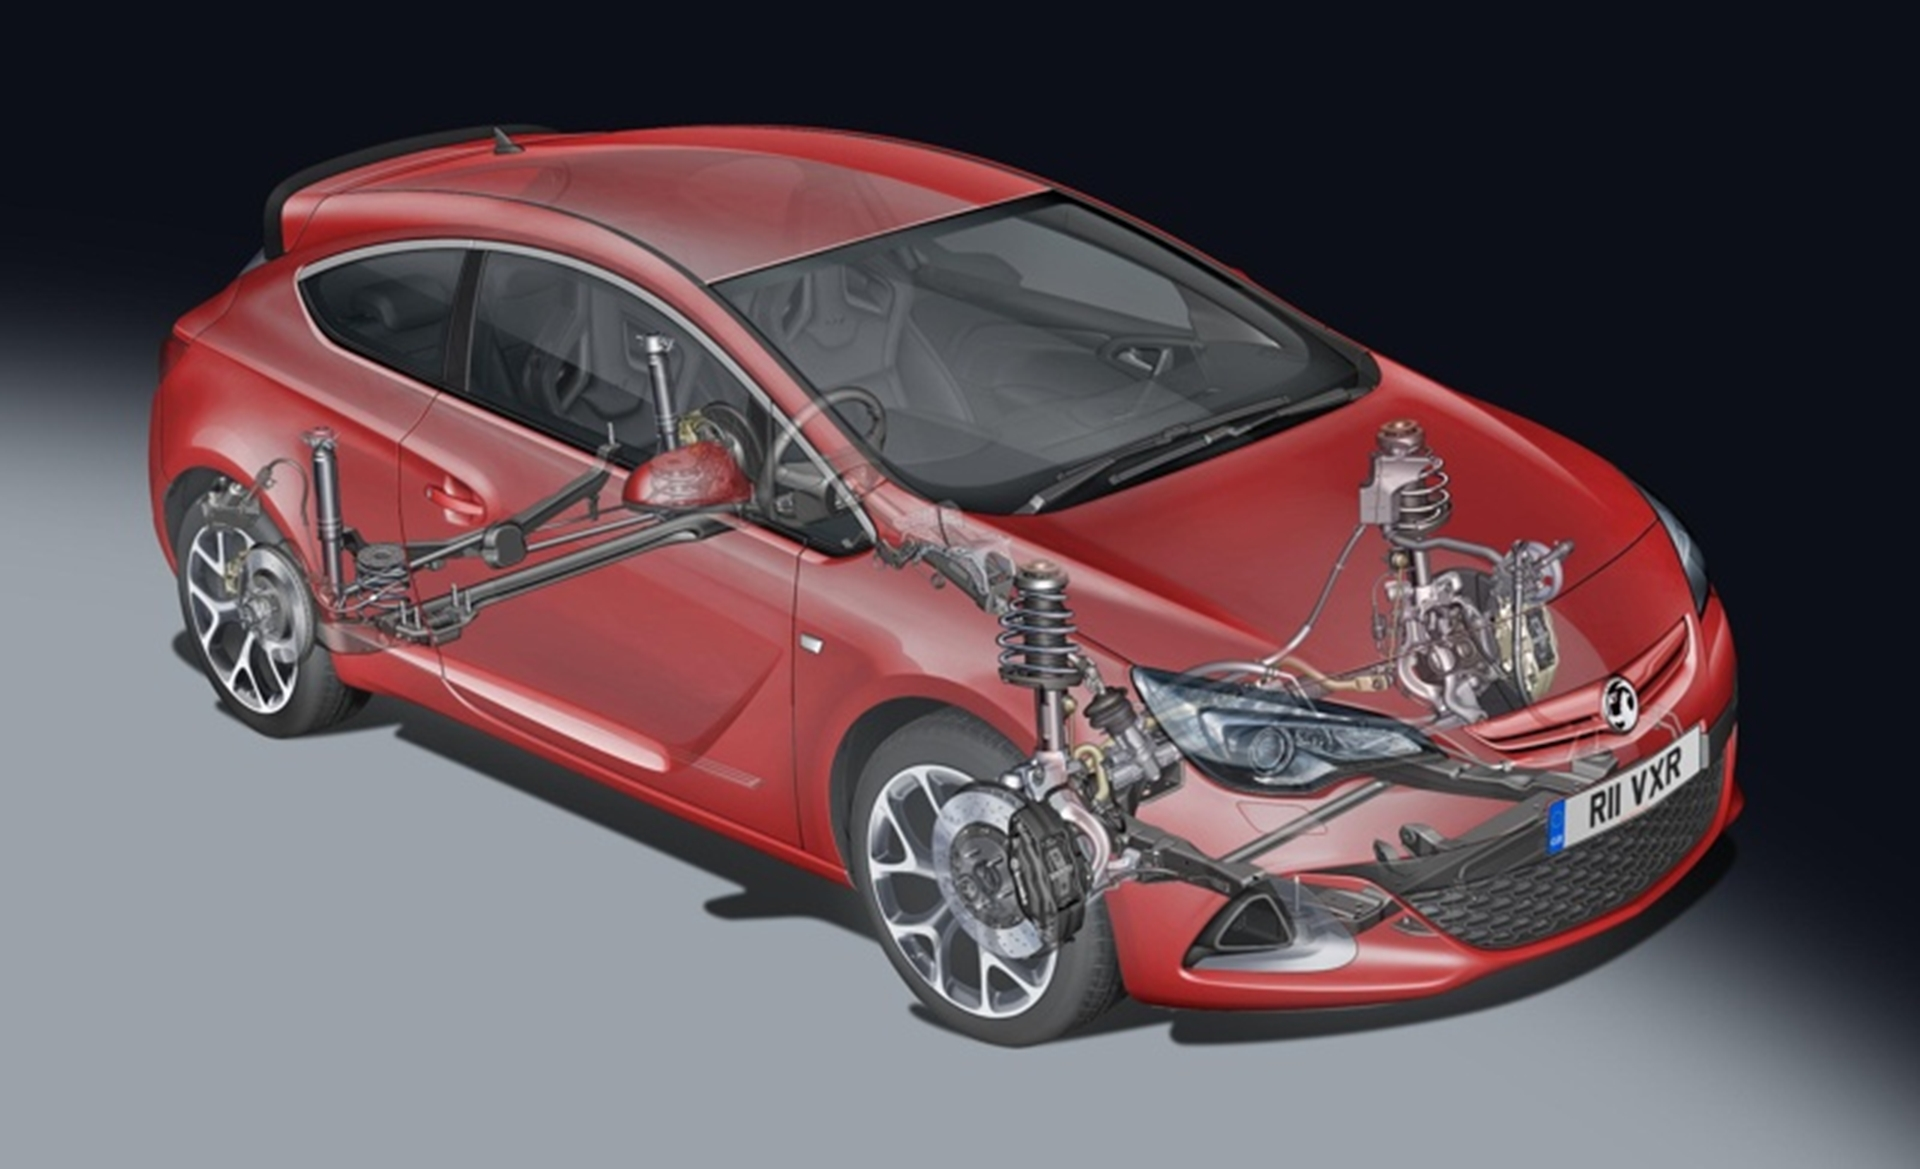 New Vauxhall Astra VXR Torque in-gear without the torque steer